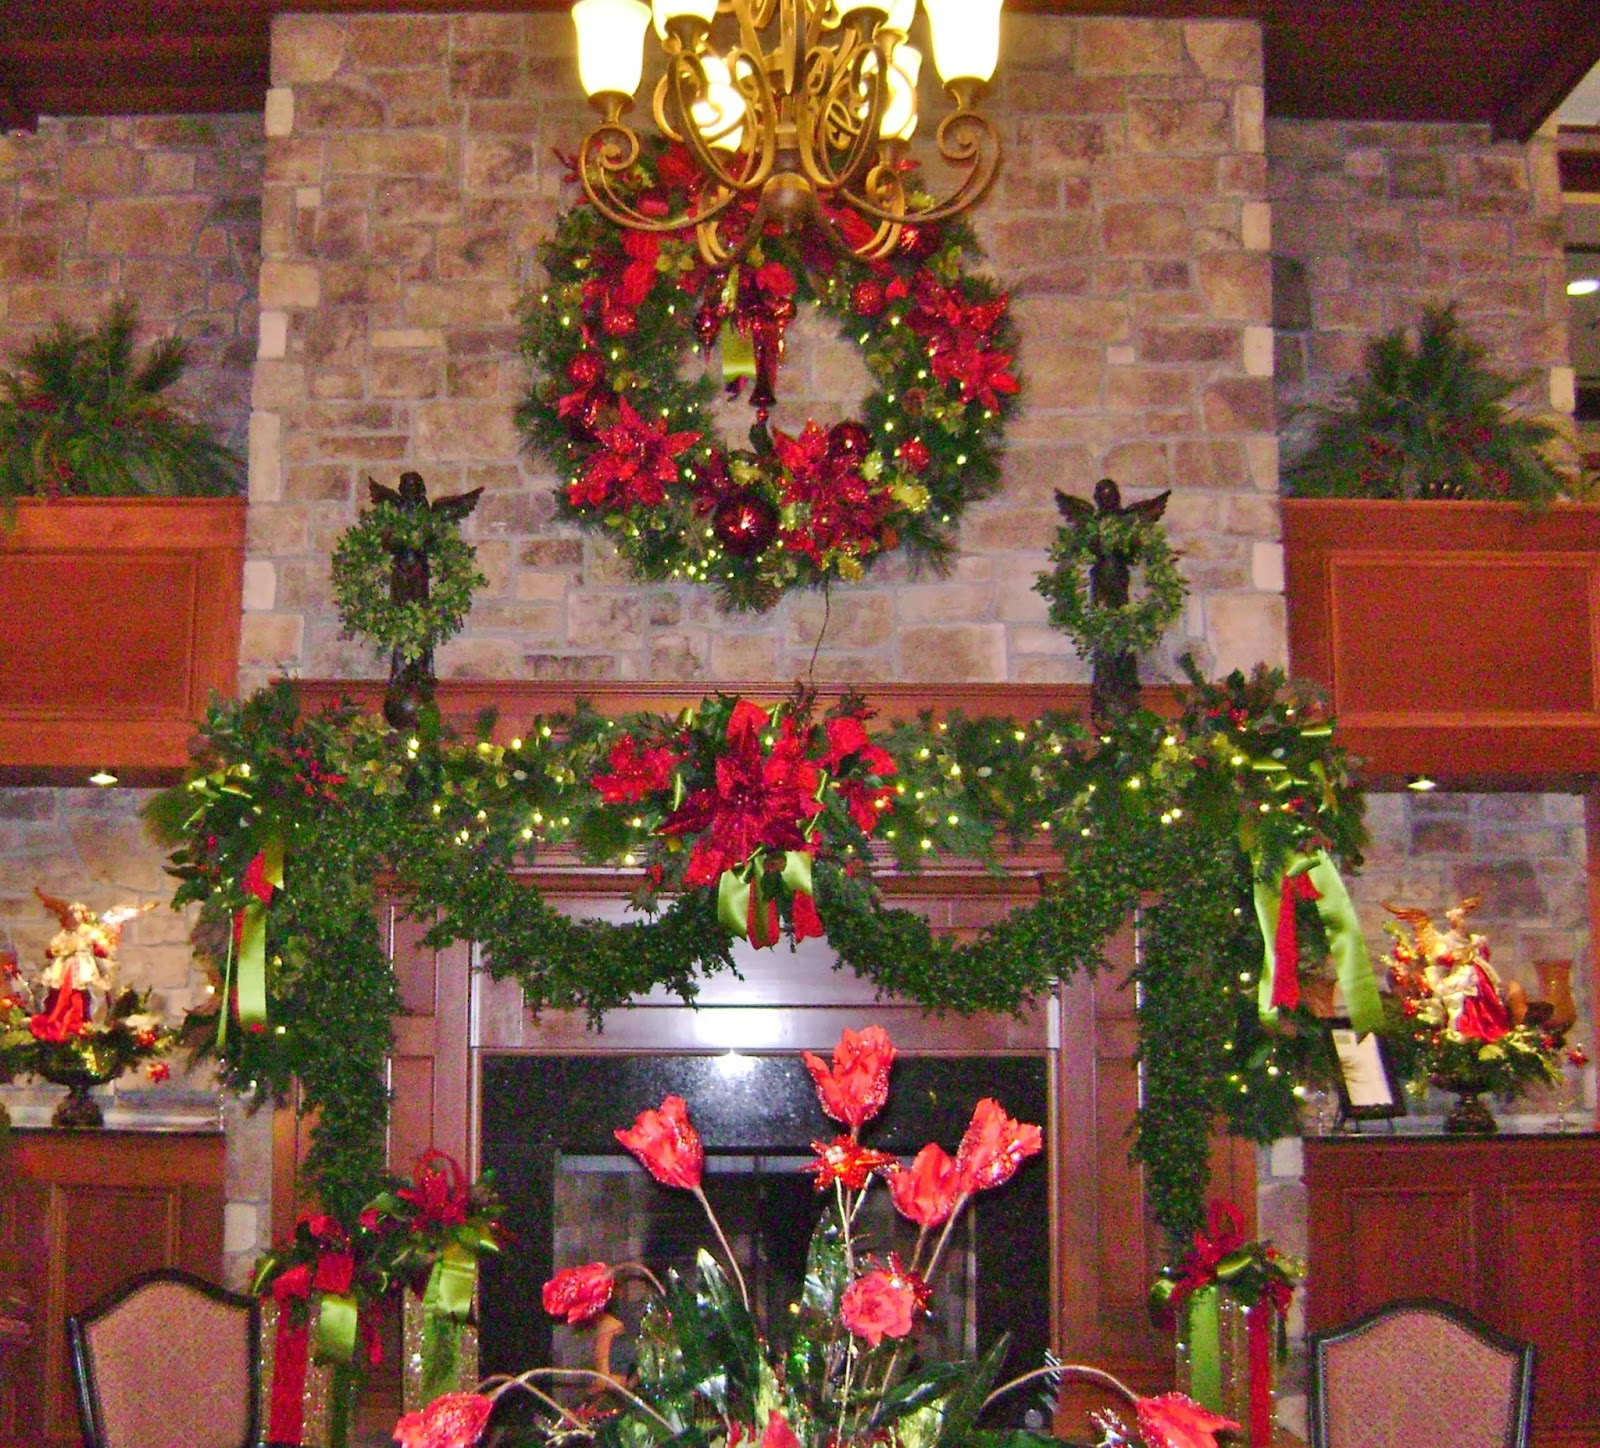 The Inn at Christmas Place Celebrates Christmas All Year Round